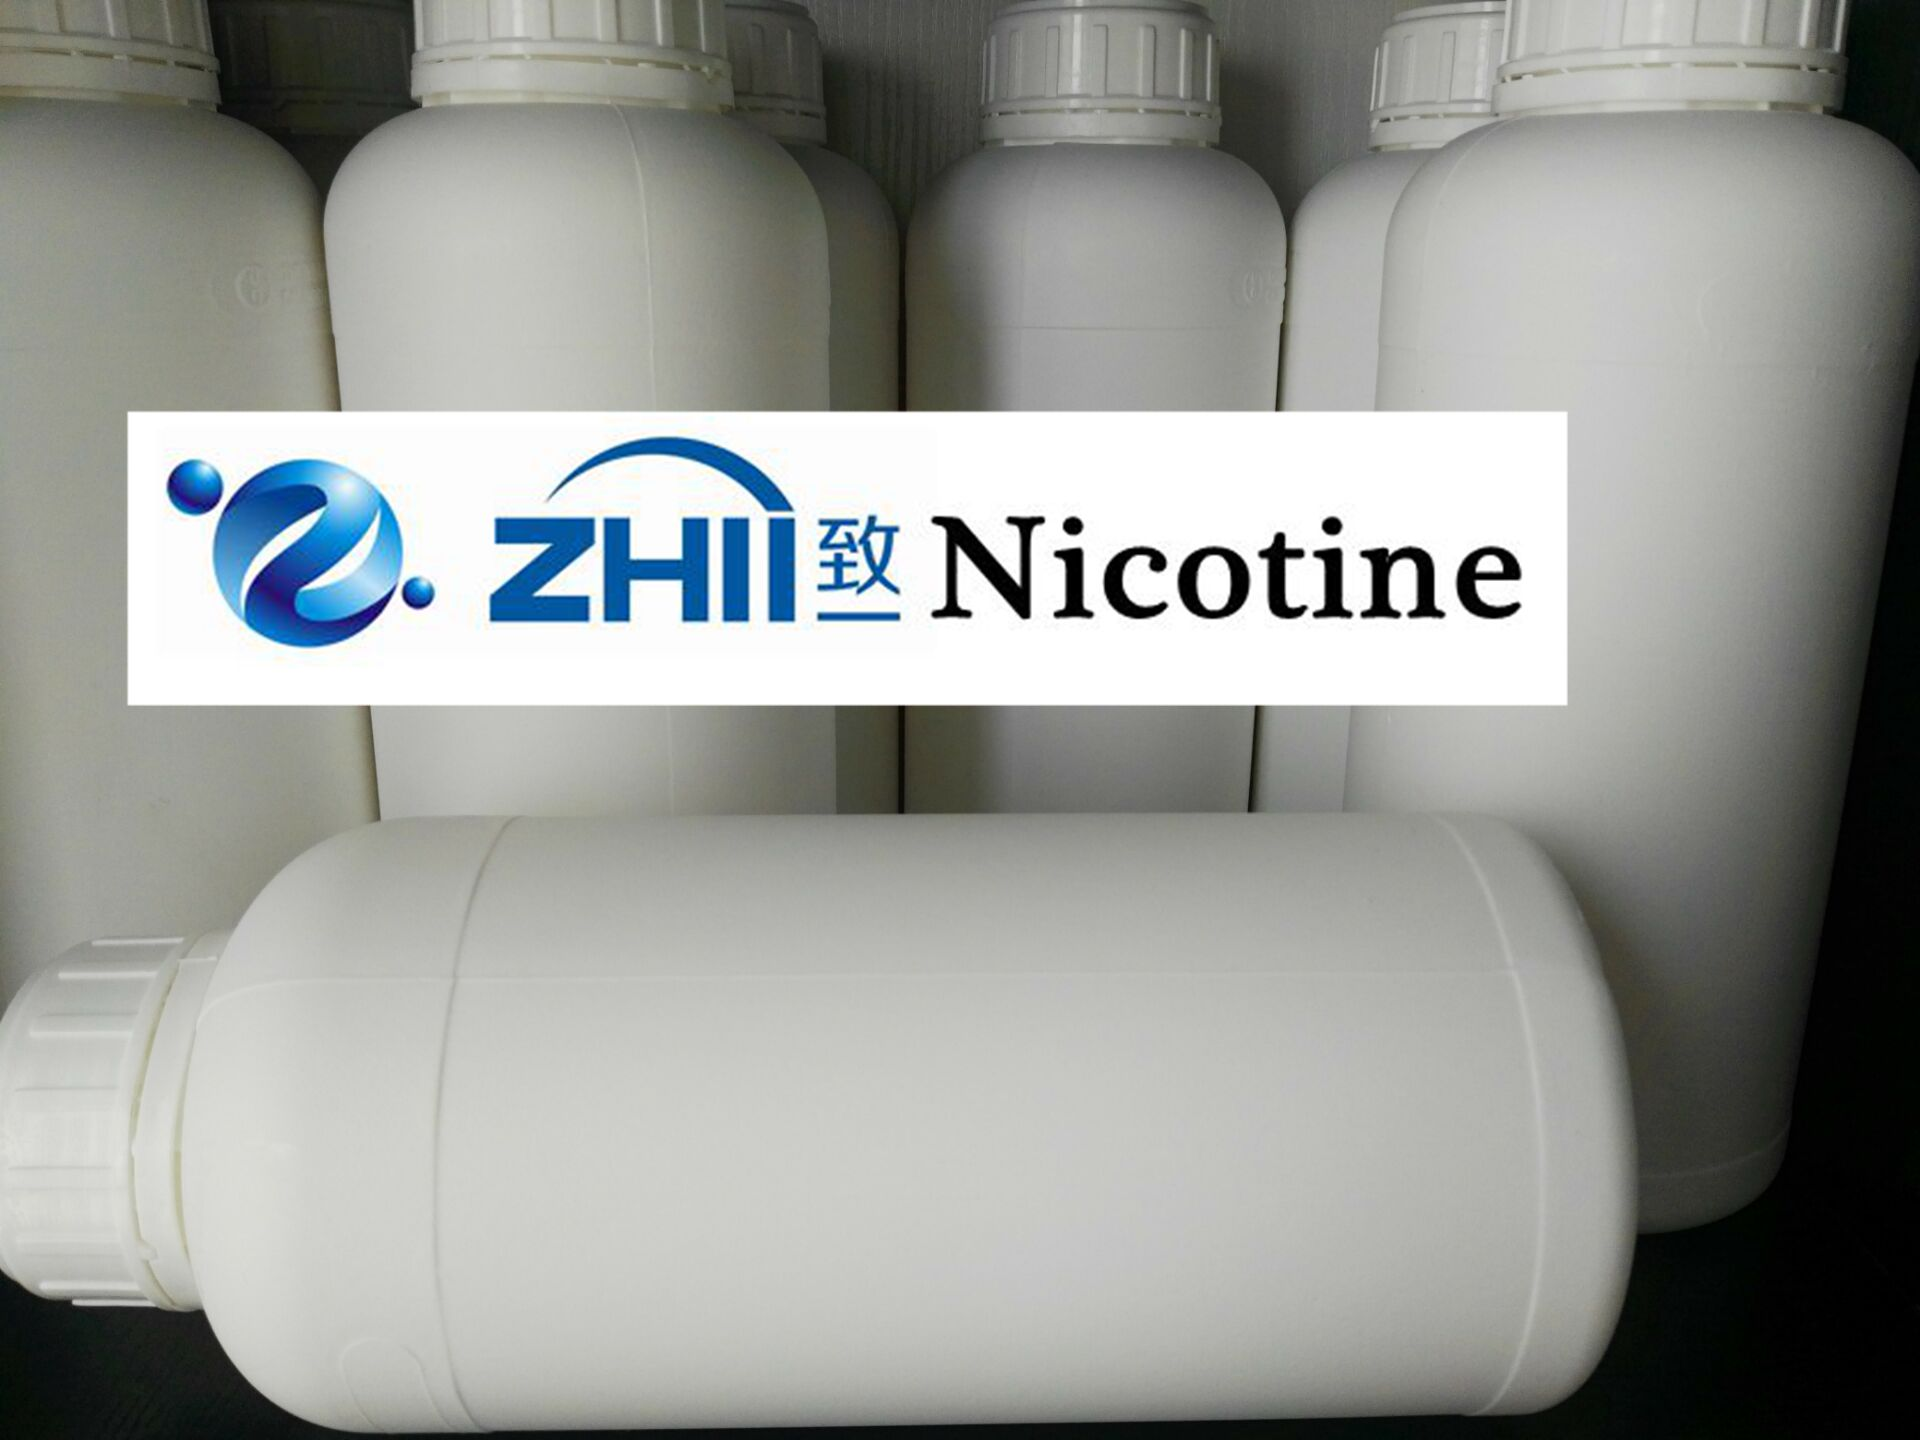 Sell ZHII PG Base Flavoring Concentrate -tobacco Flavor